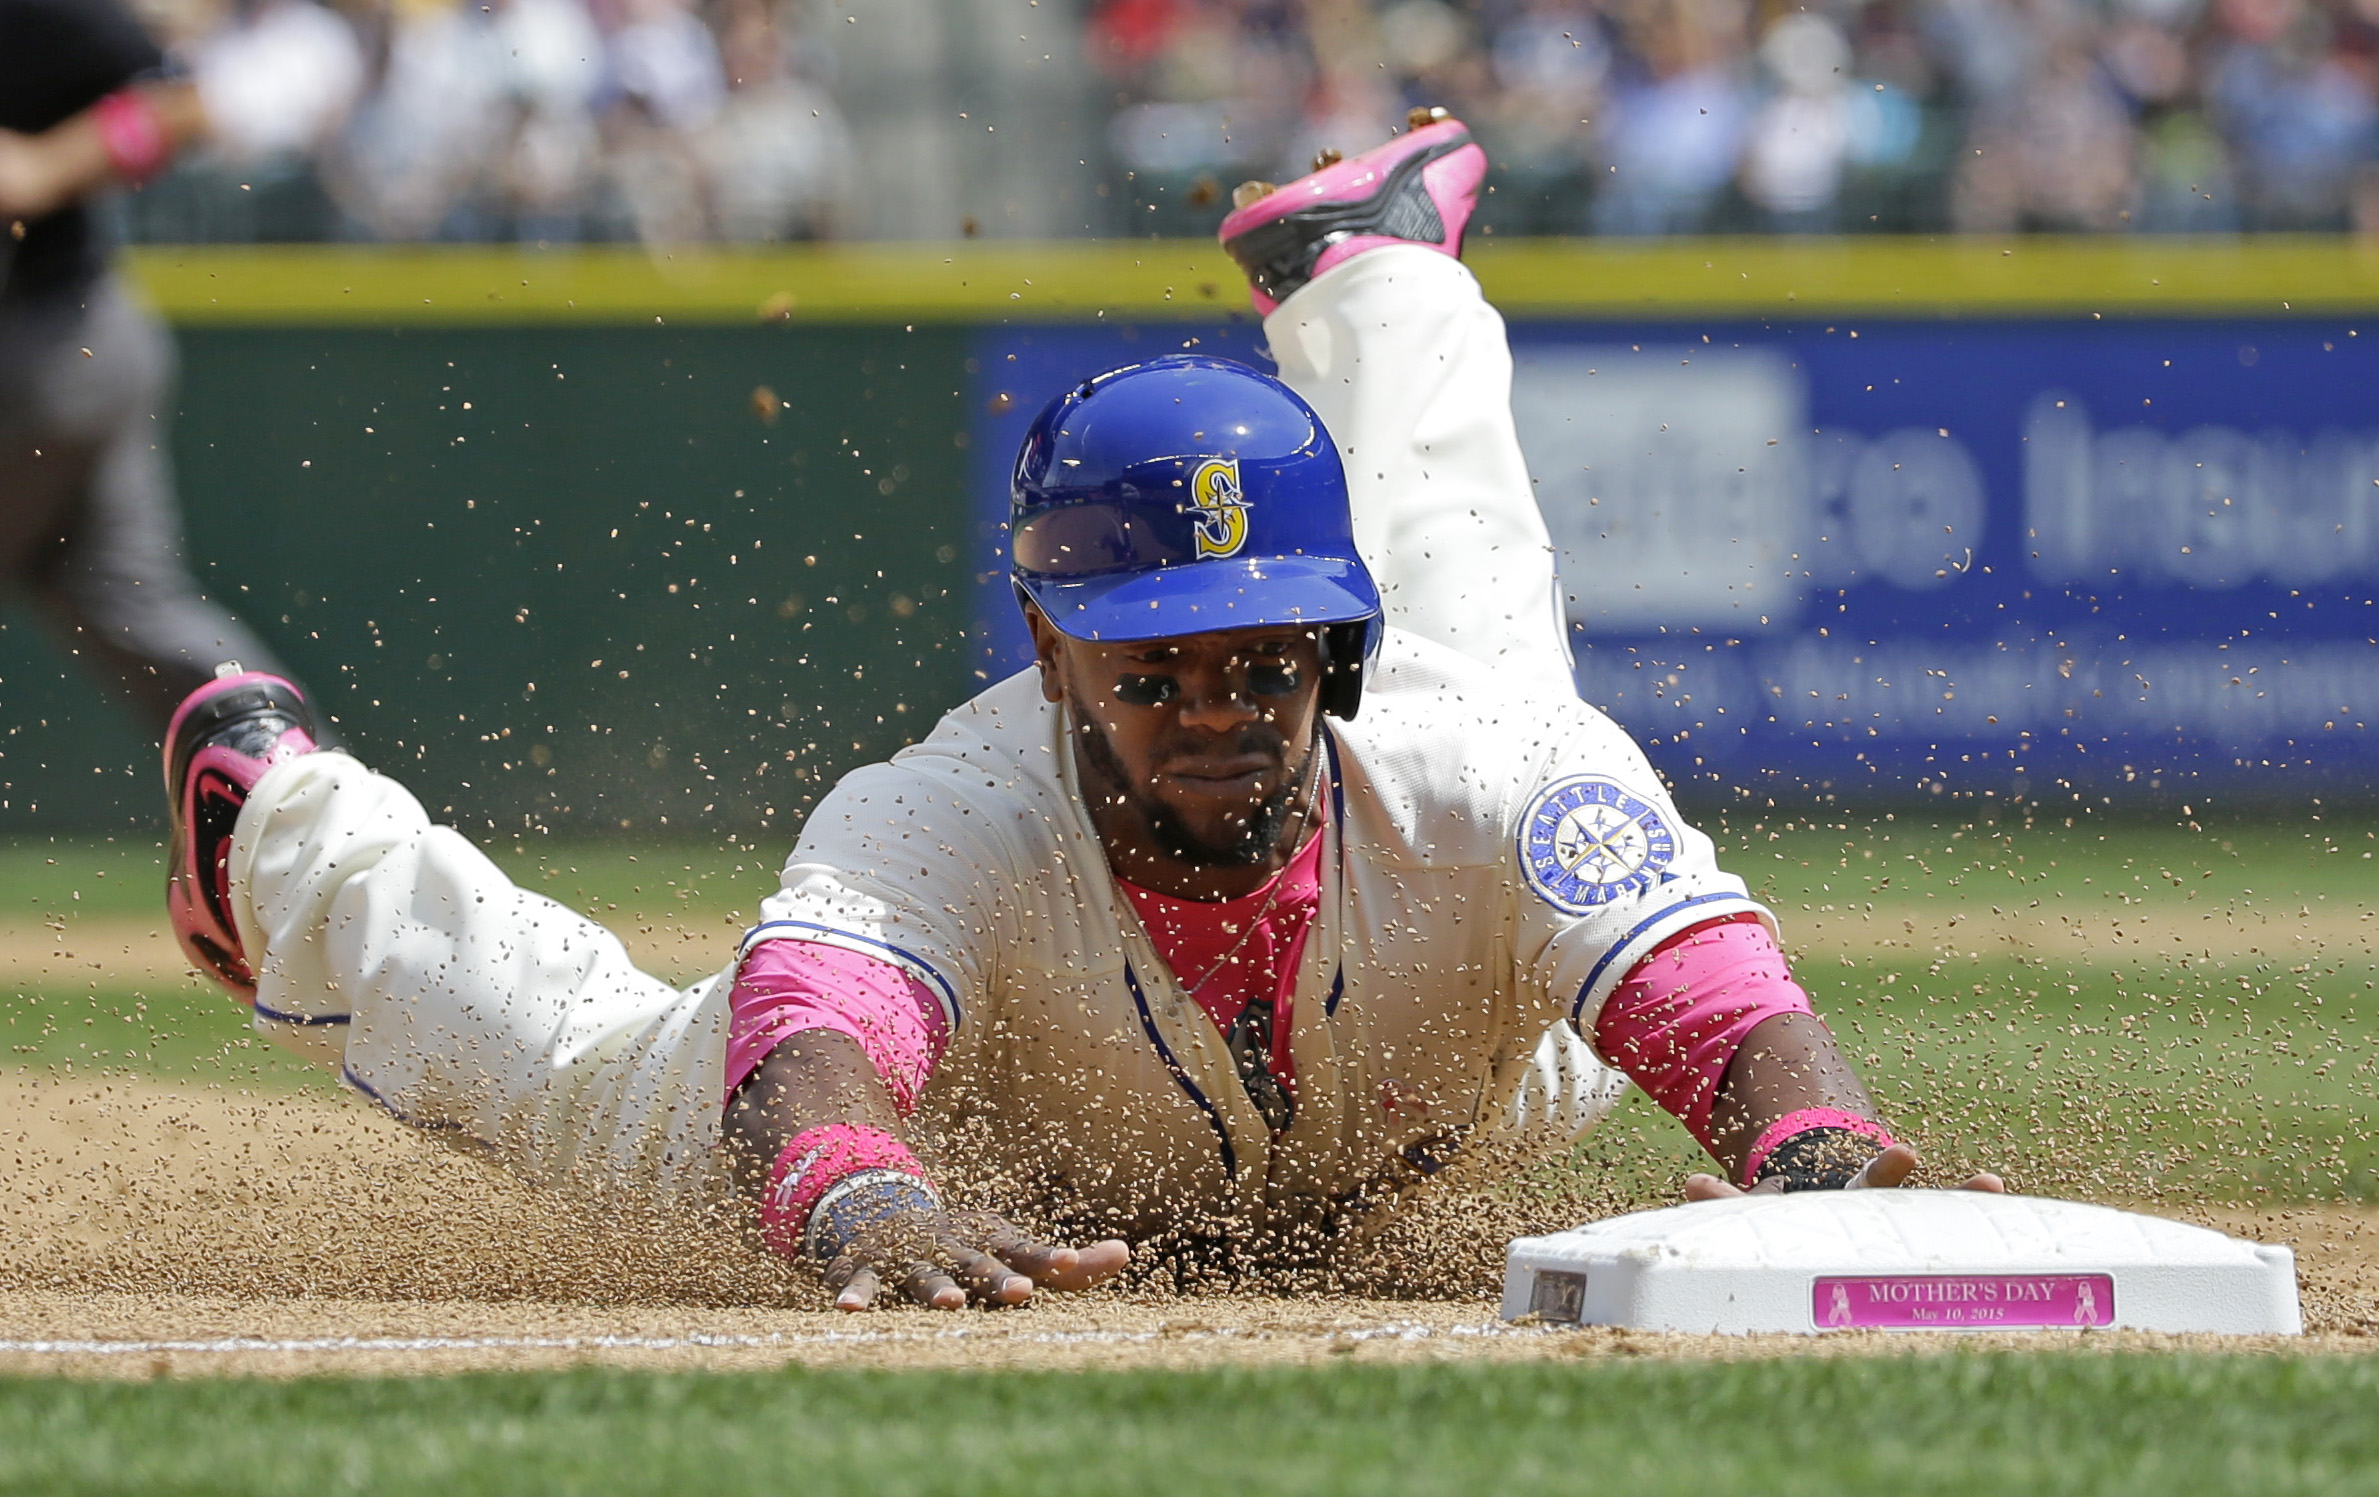 Seattle Mariners' Rickie Weeks dives safely into third base as he advances on a single hit by Mariners' Nelson Cruz in the fourth inning of a baseball game against the Oakland Athletics, Sunday, May 10, 2015, in Seattle. (AP Photo/Ted S. Warren)